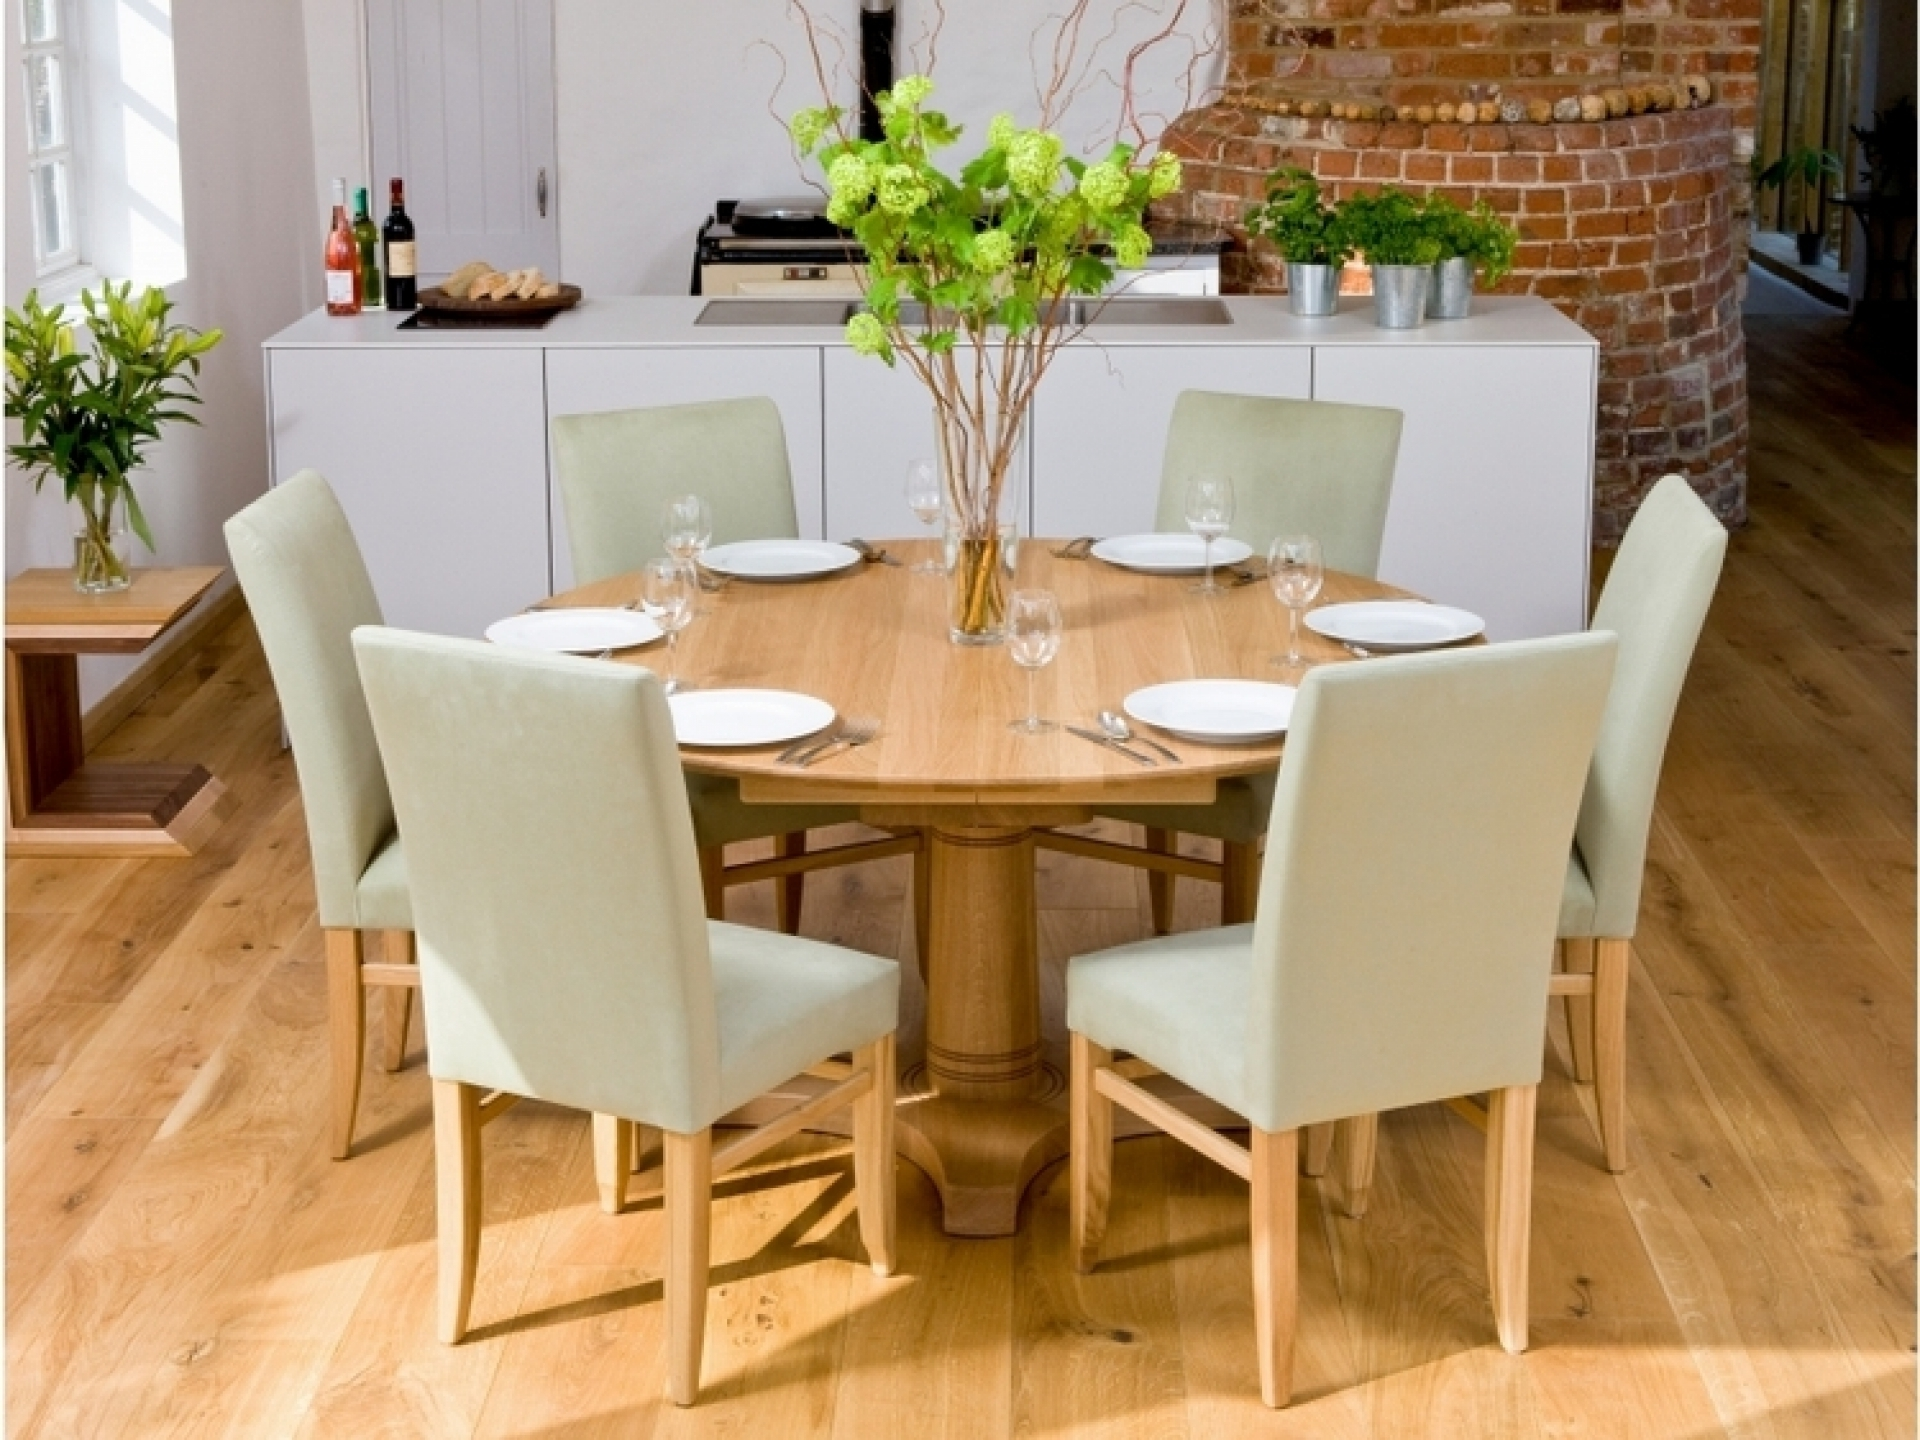 Candice Ii Round Dining Tables Throughout Most Current Decorating Nice Dining Table Set 6 Seater And House Beautiful Rooms (View 16 of 25)